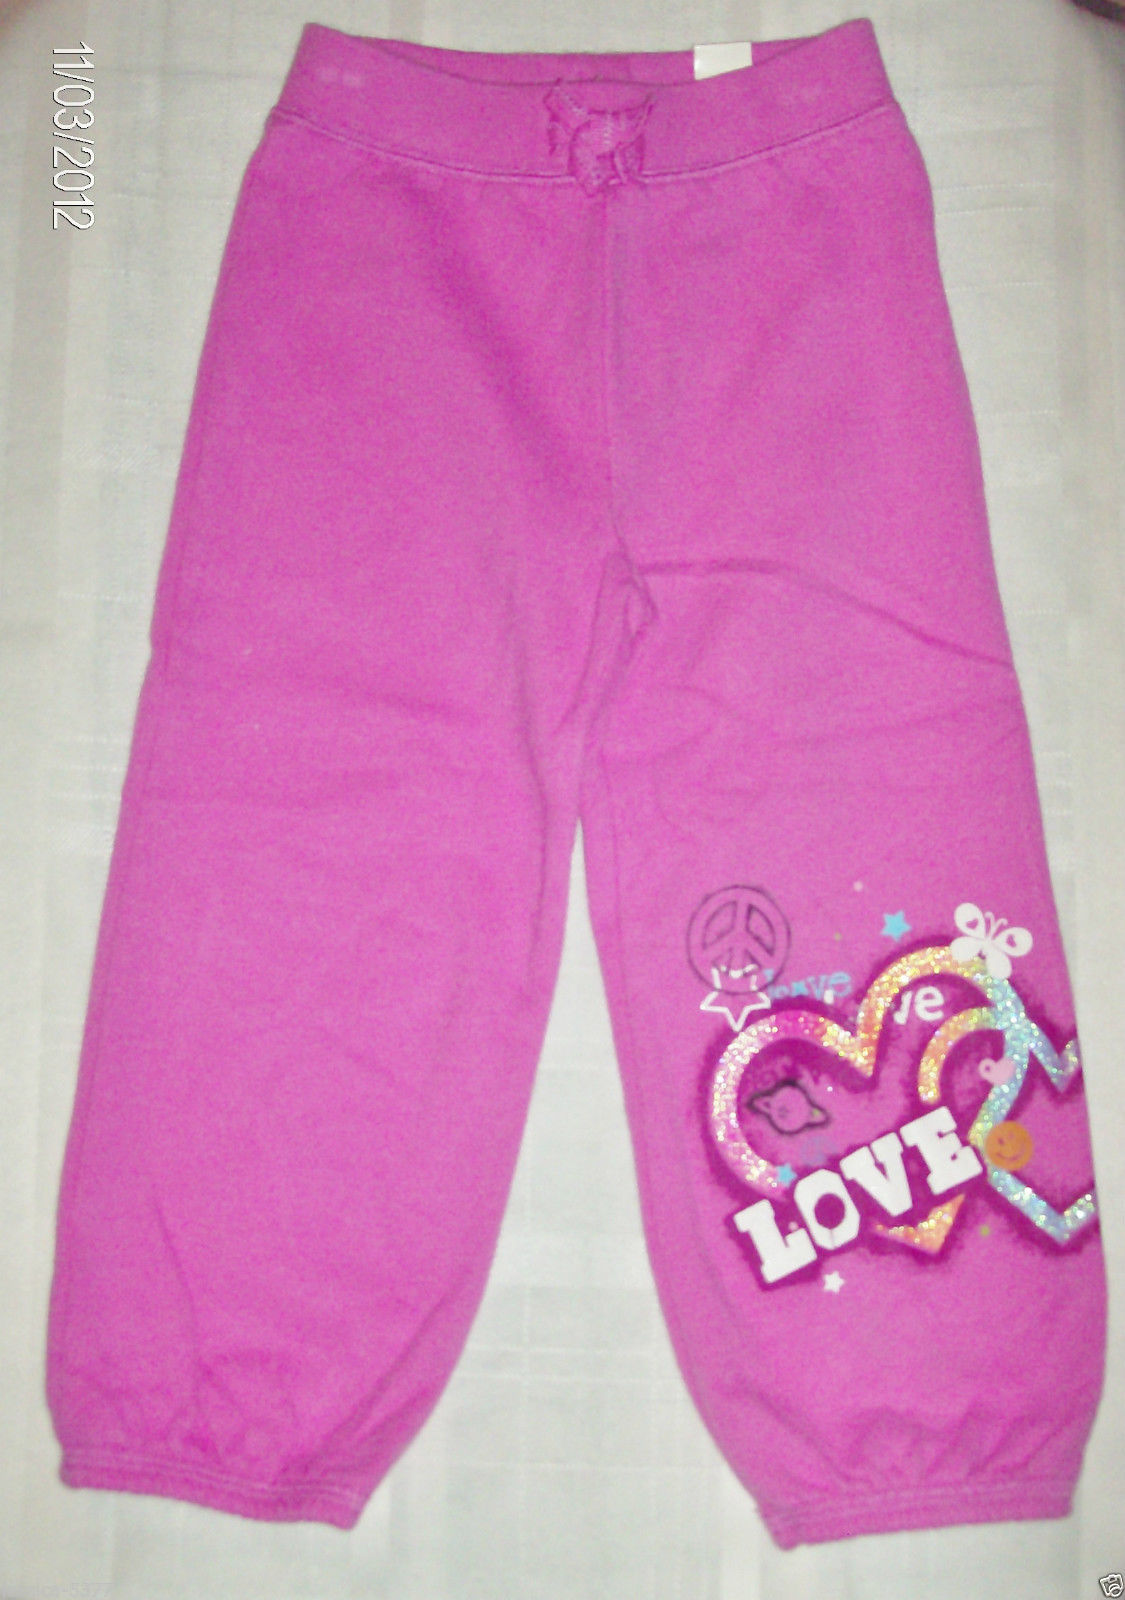 Primary image for THE CHILDRENS PLACE GIRLS Toddler Infant Pants Size 18 Mo. or 24 mo. NEW